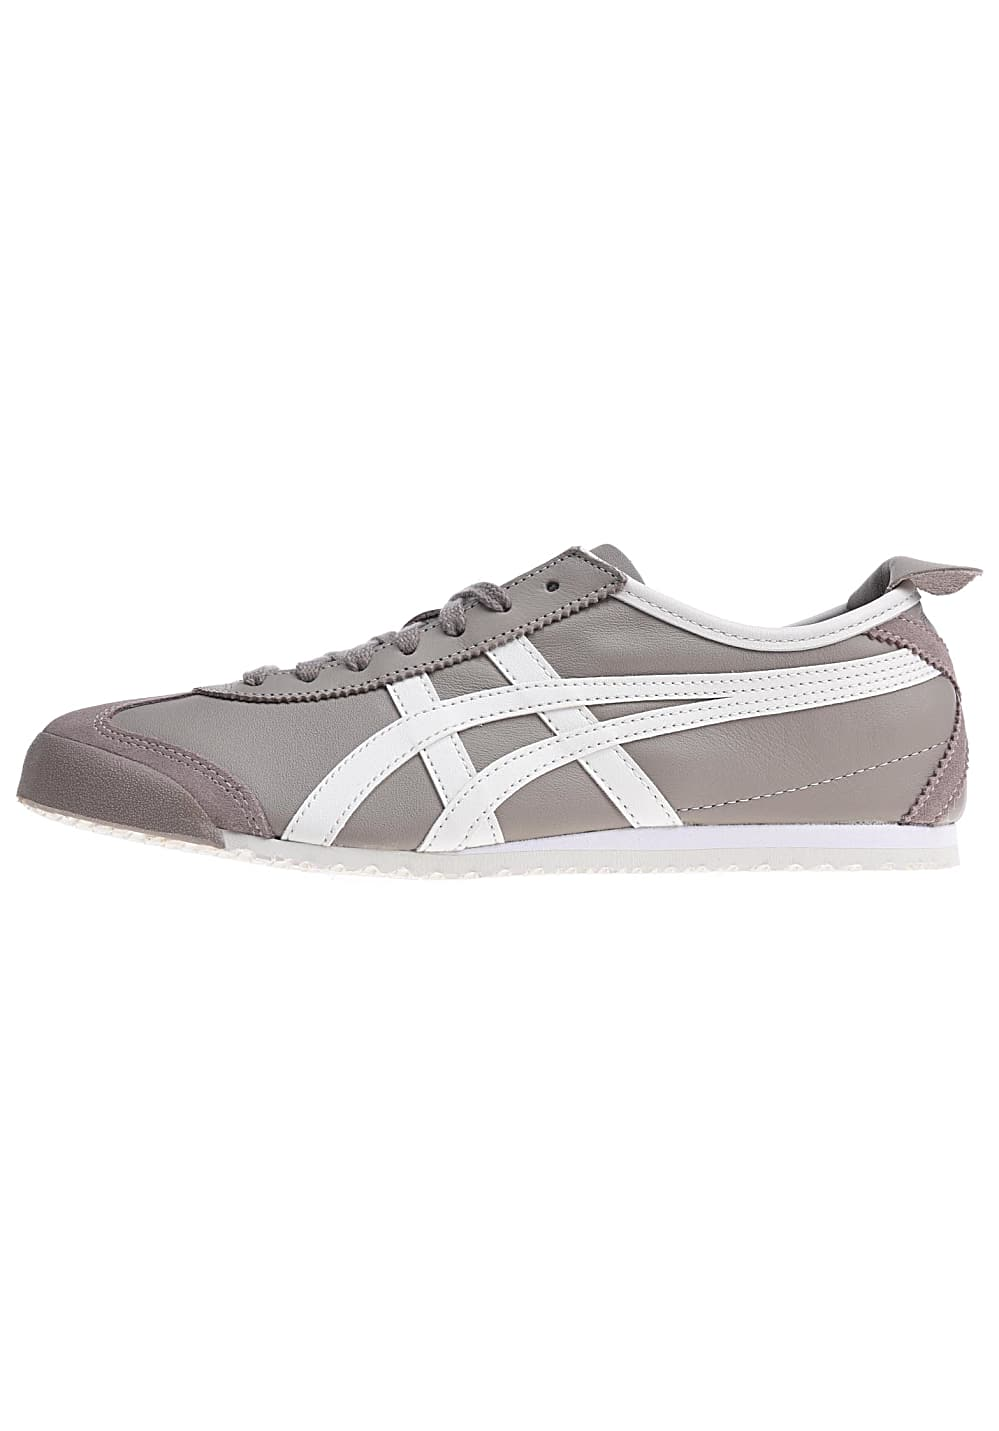 size 40 a35db e4827 Onitsuka Tiger Mexico 66 - Sneakers - Grey